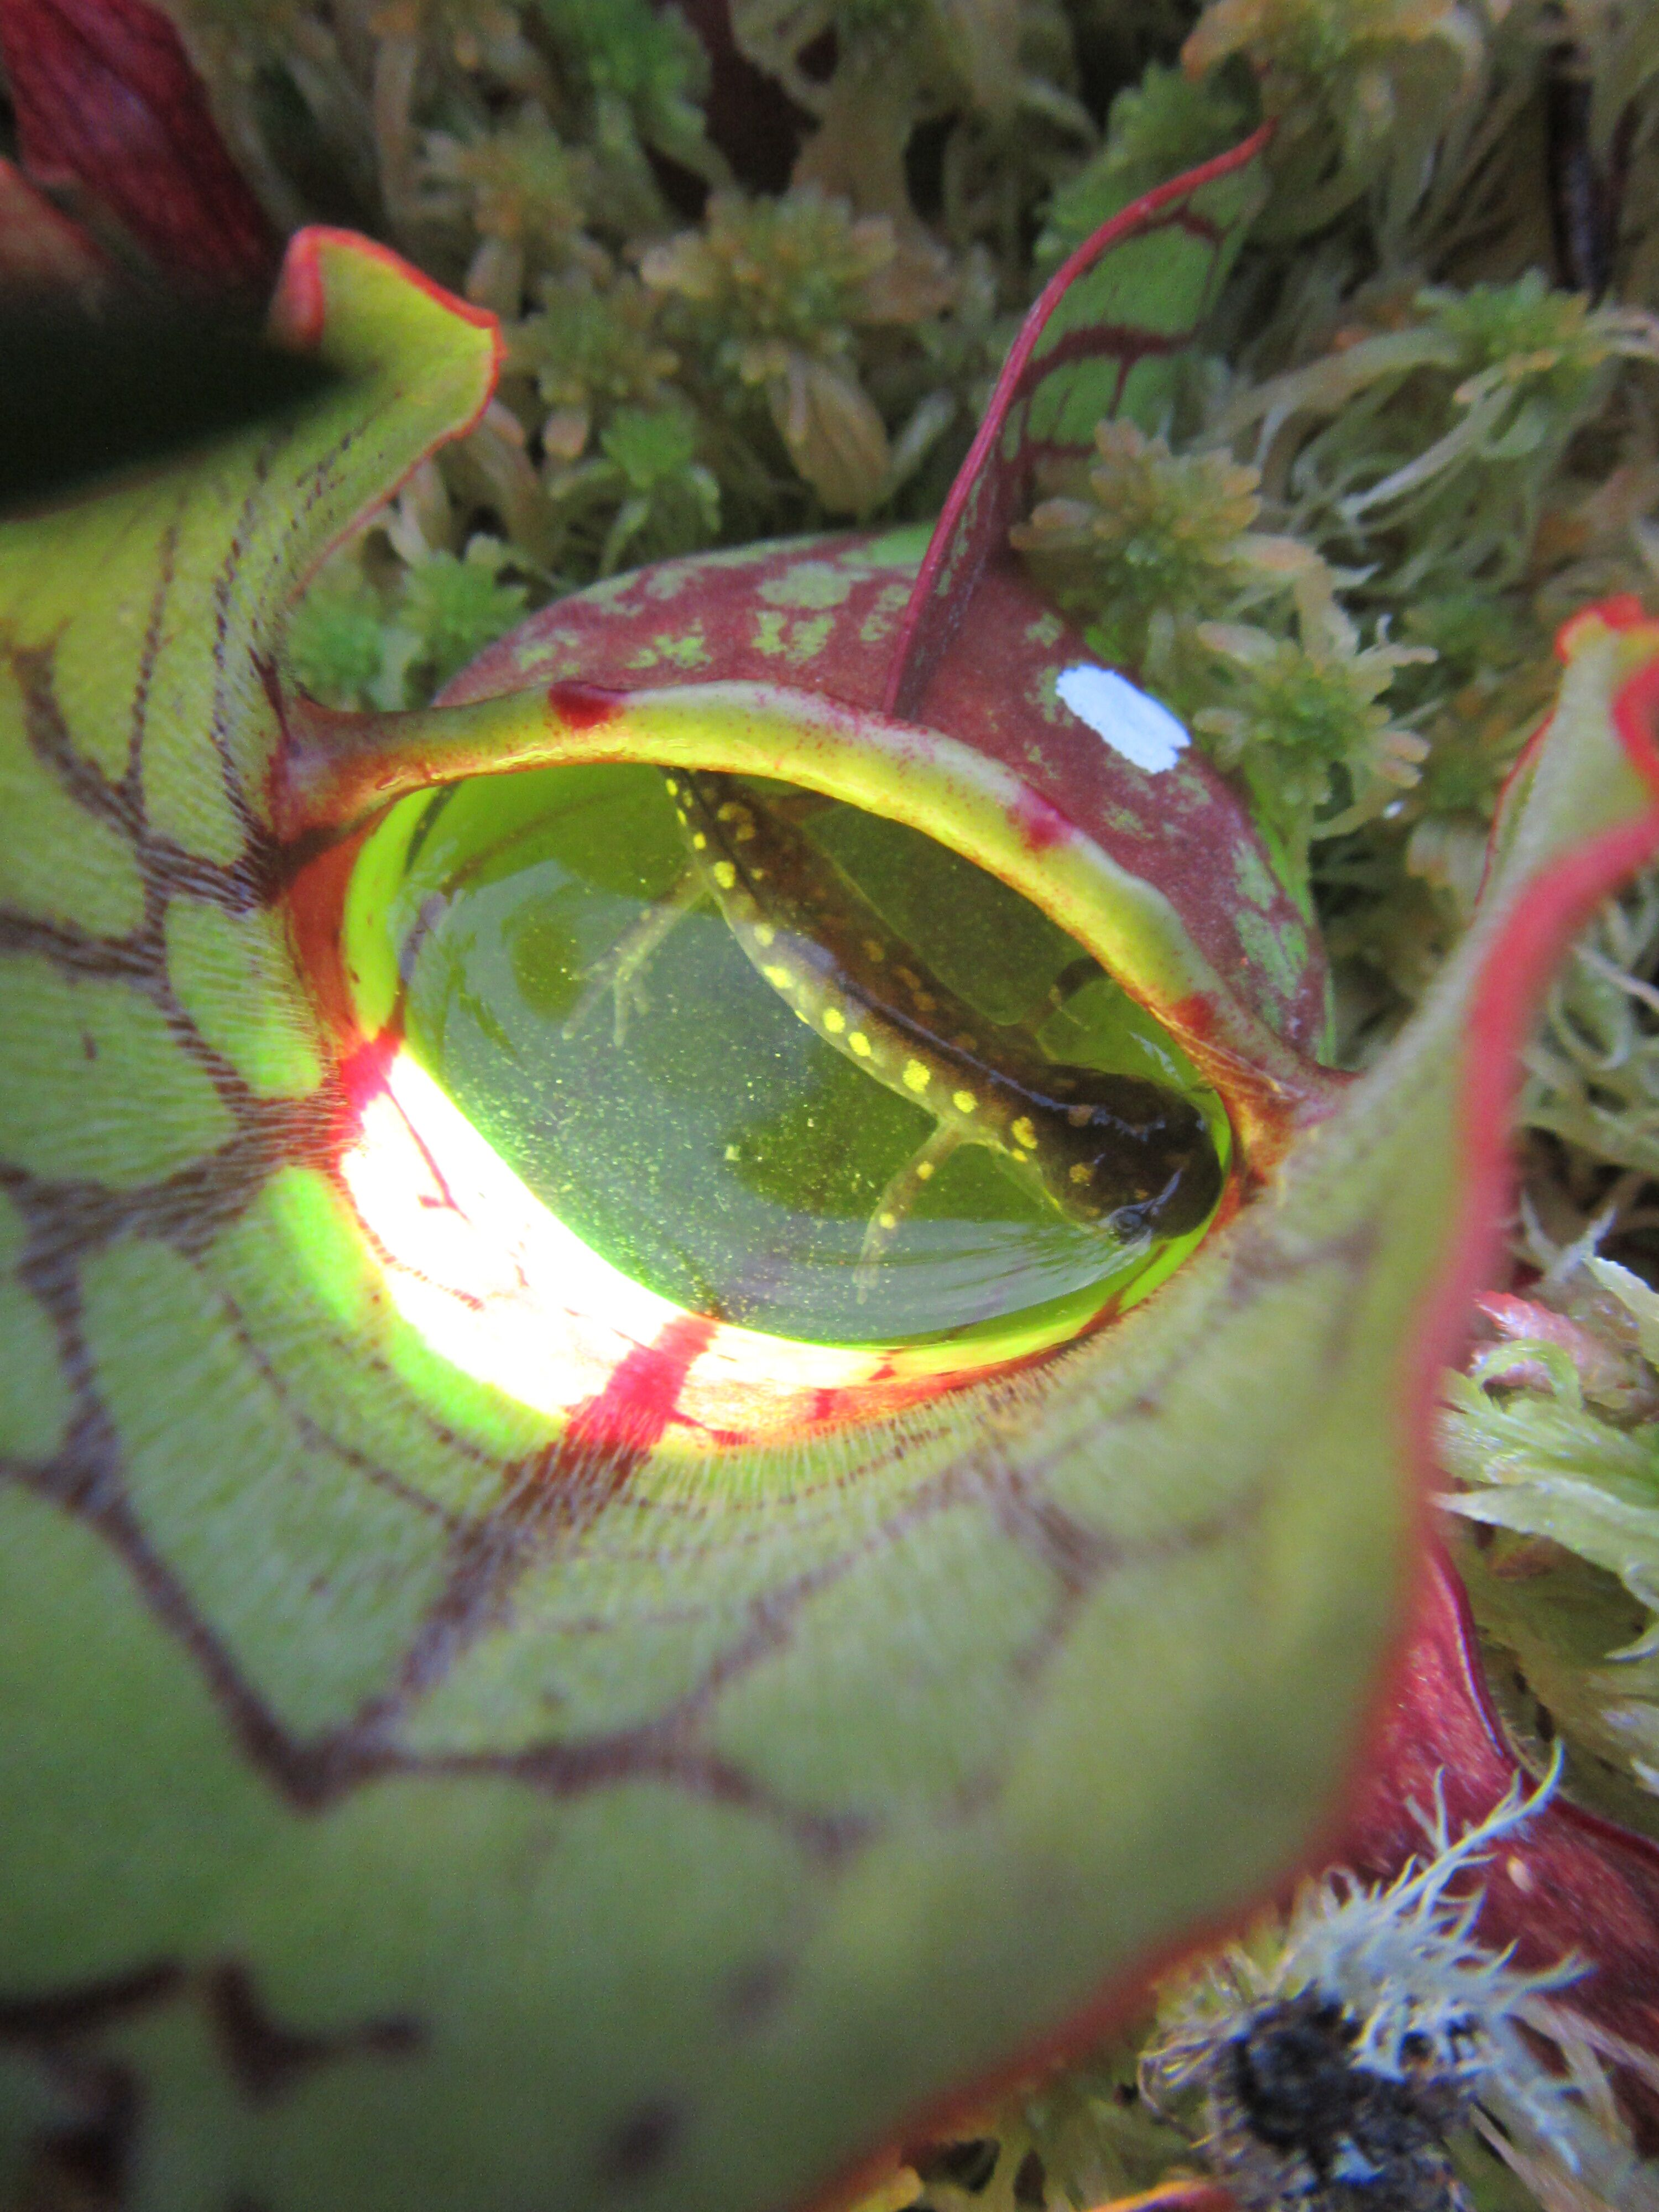 Salamander in a pitcher plant